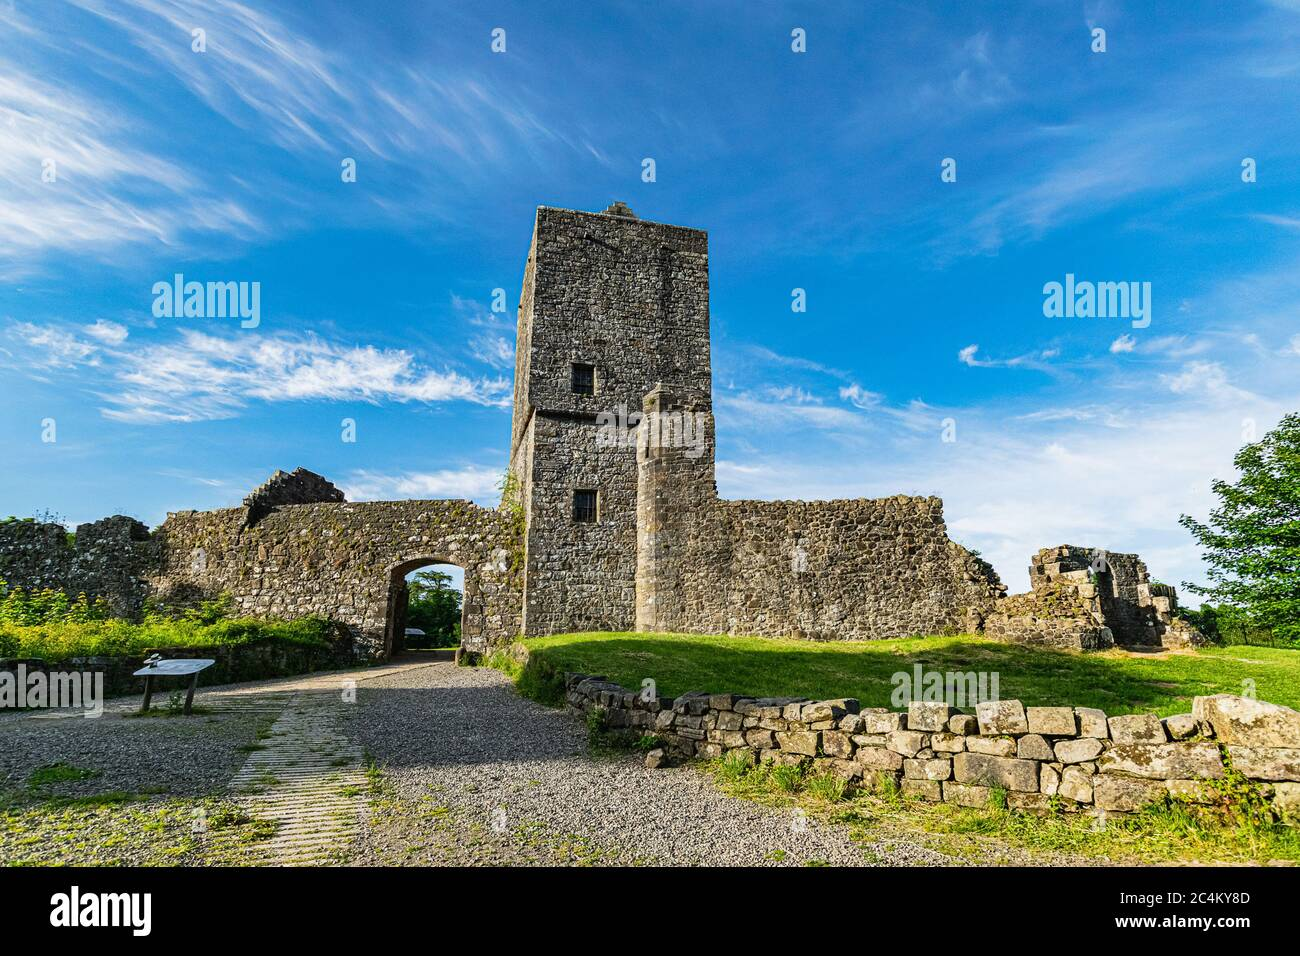 Ruins of 13th century Mugdock Castle, the stronghold of the Clan Graham in Mugdock Country Park, Scotland. Stock Photo